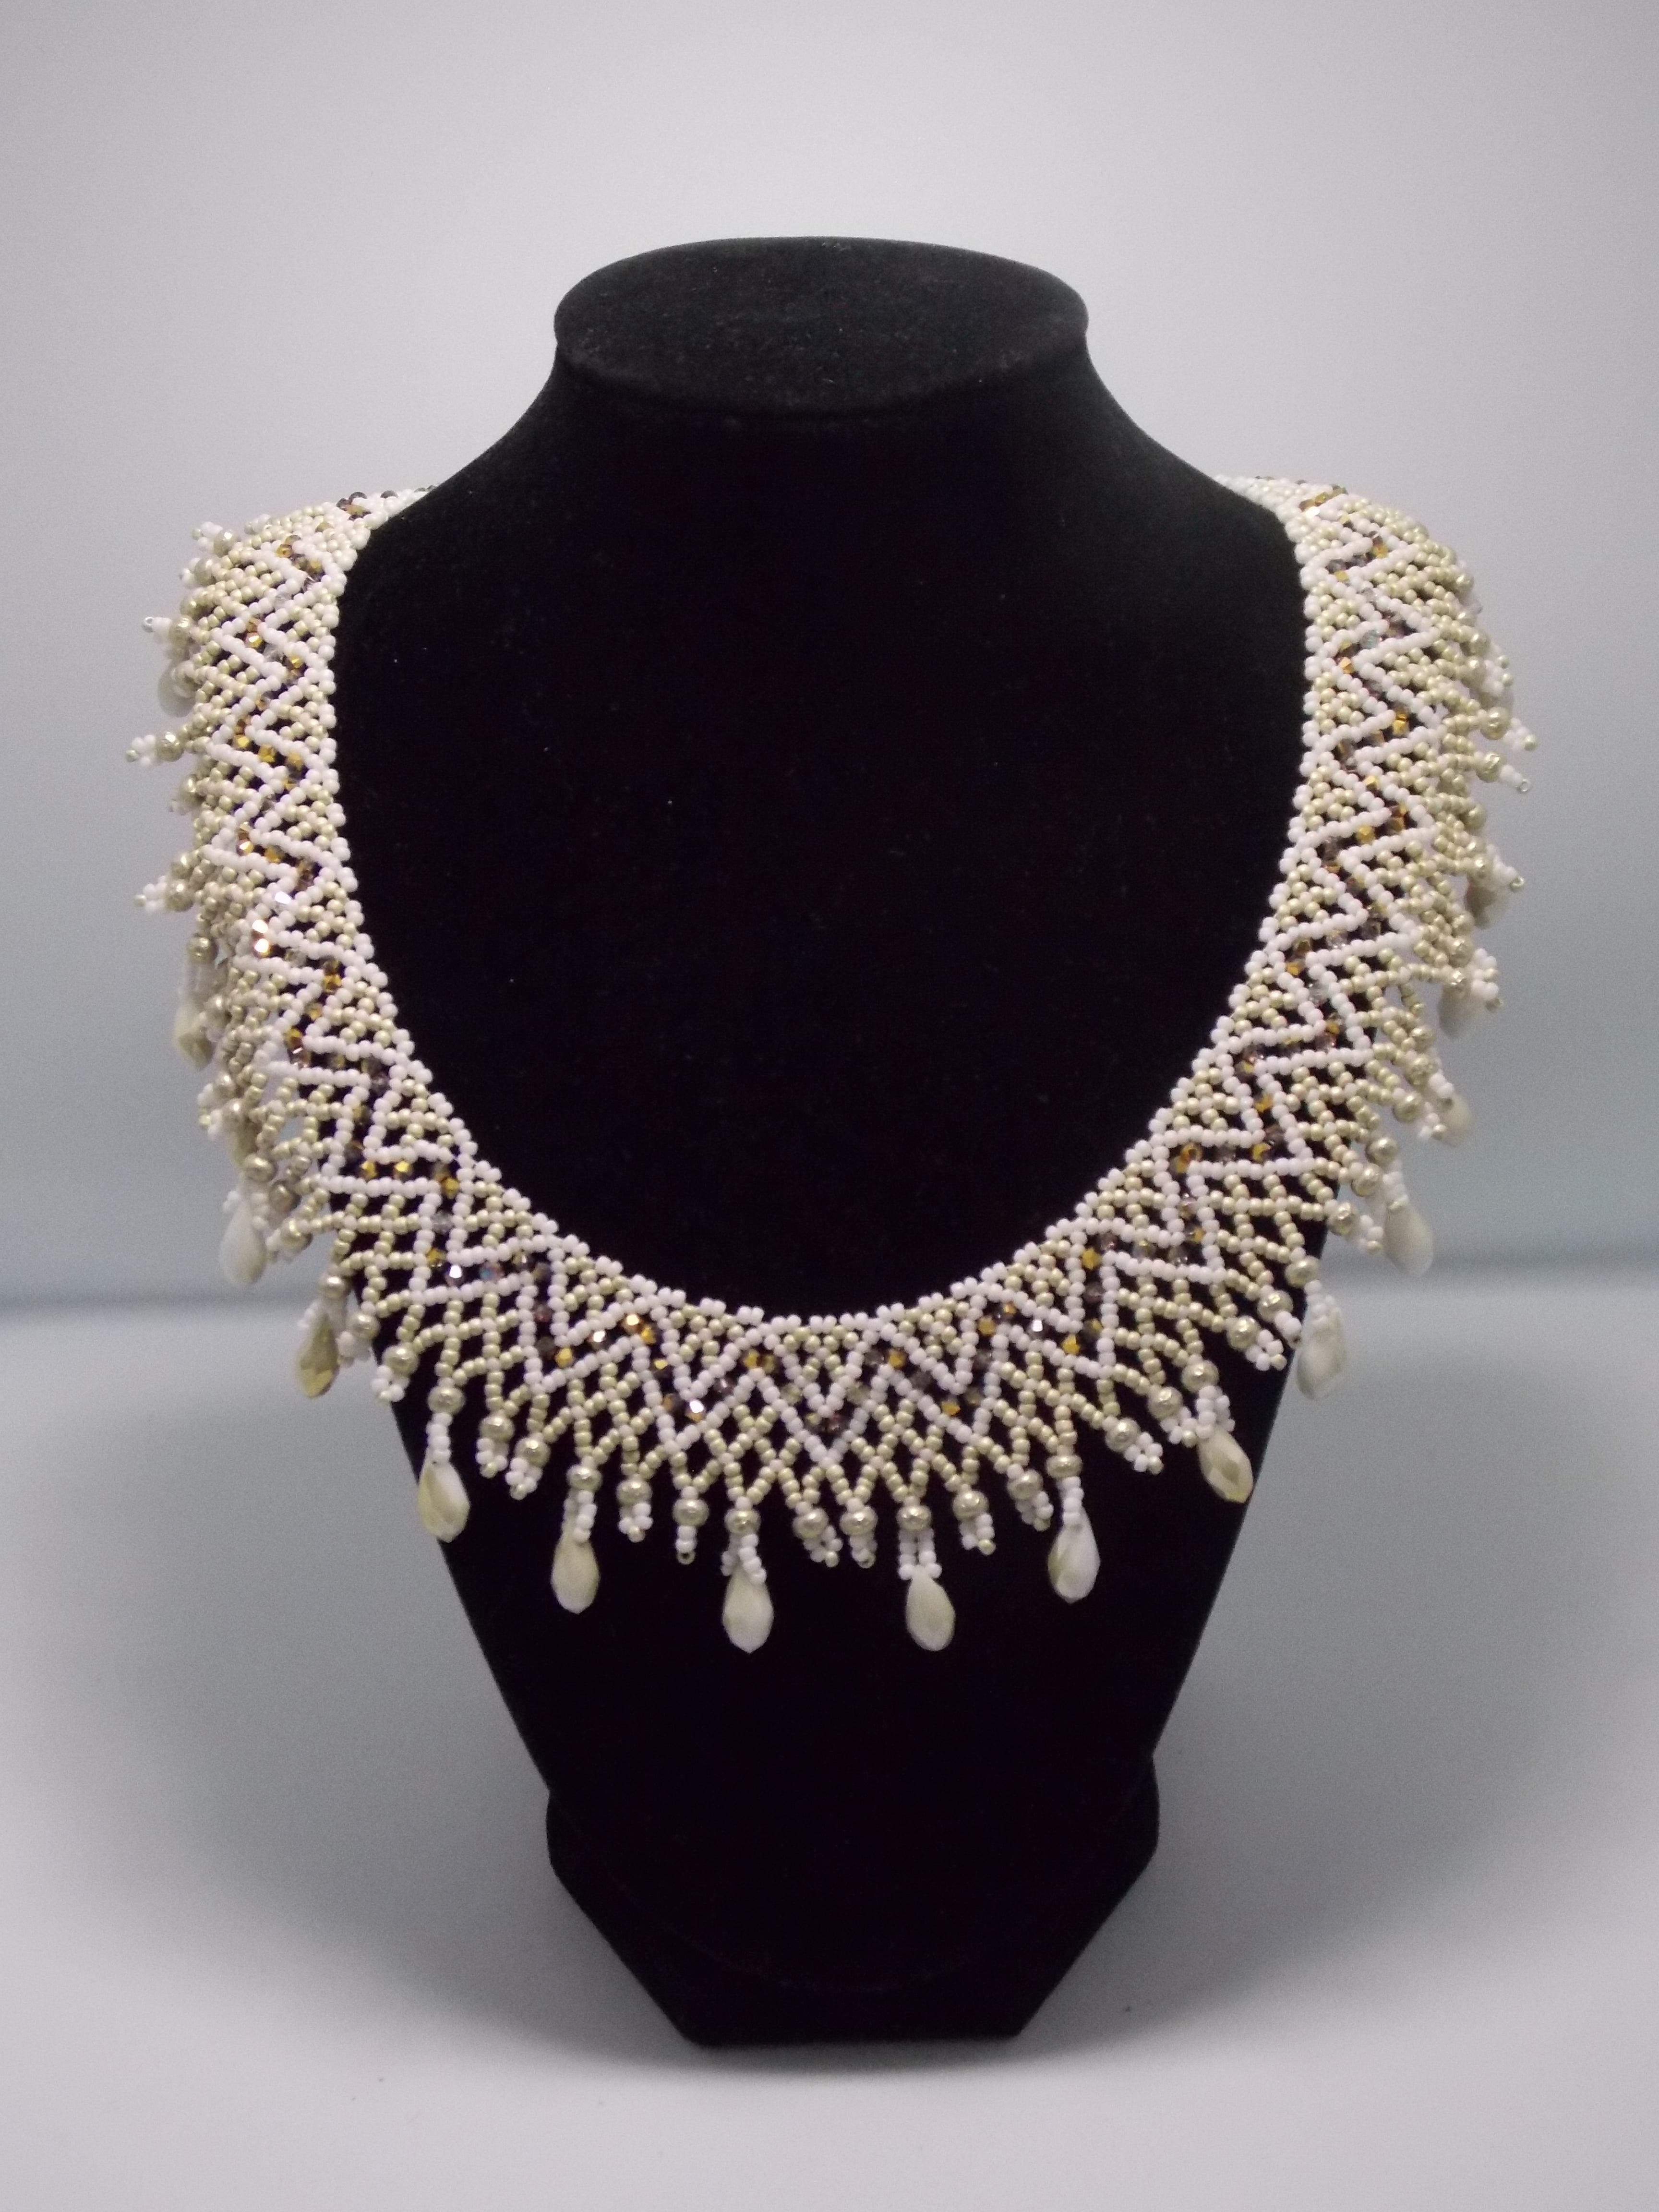 Beaded Necklace by Evelyn Schnee